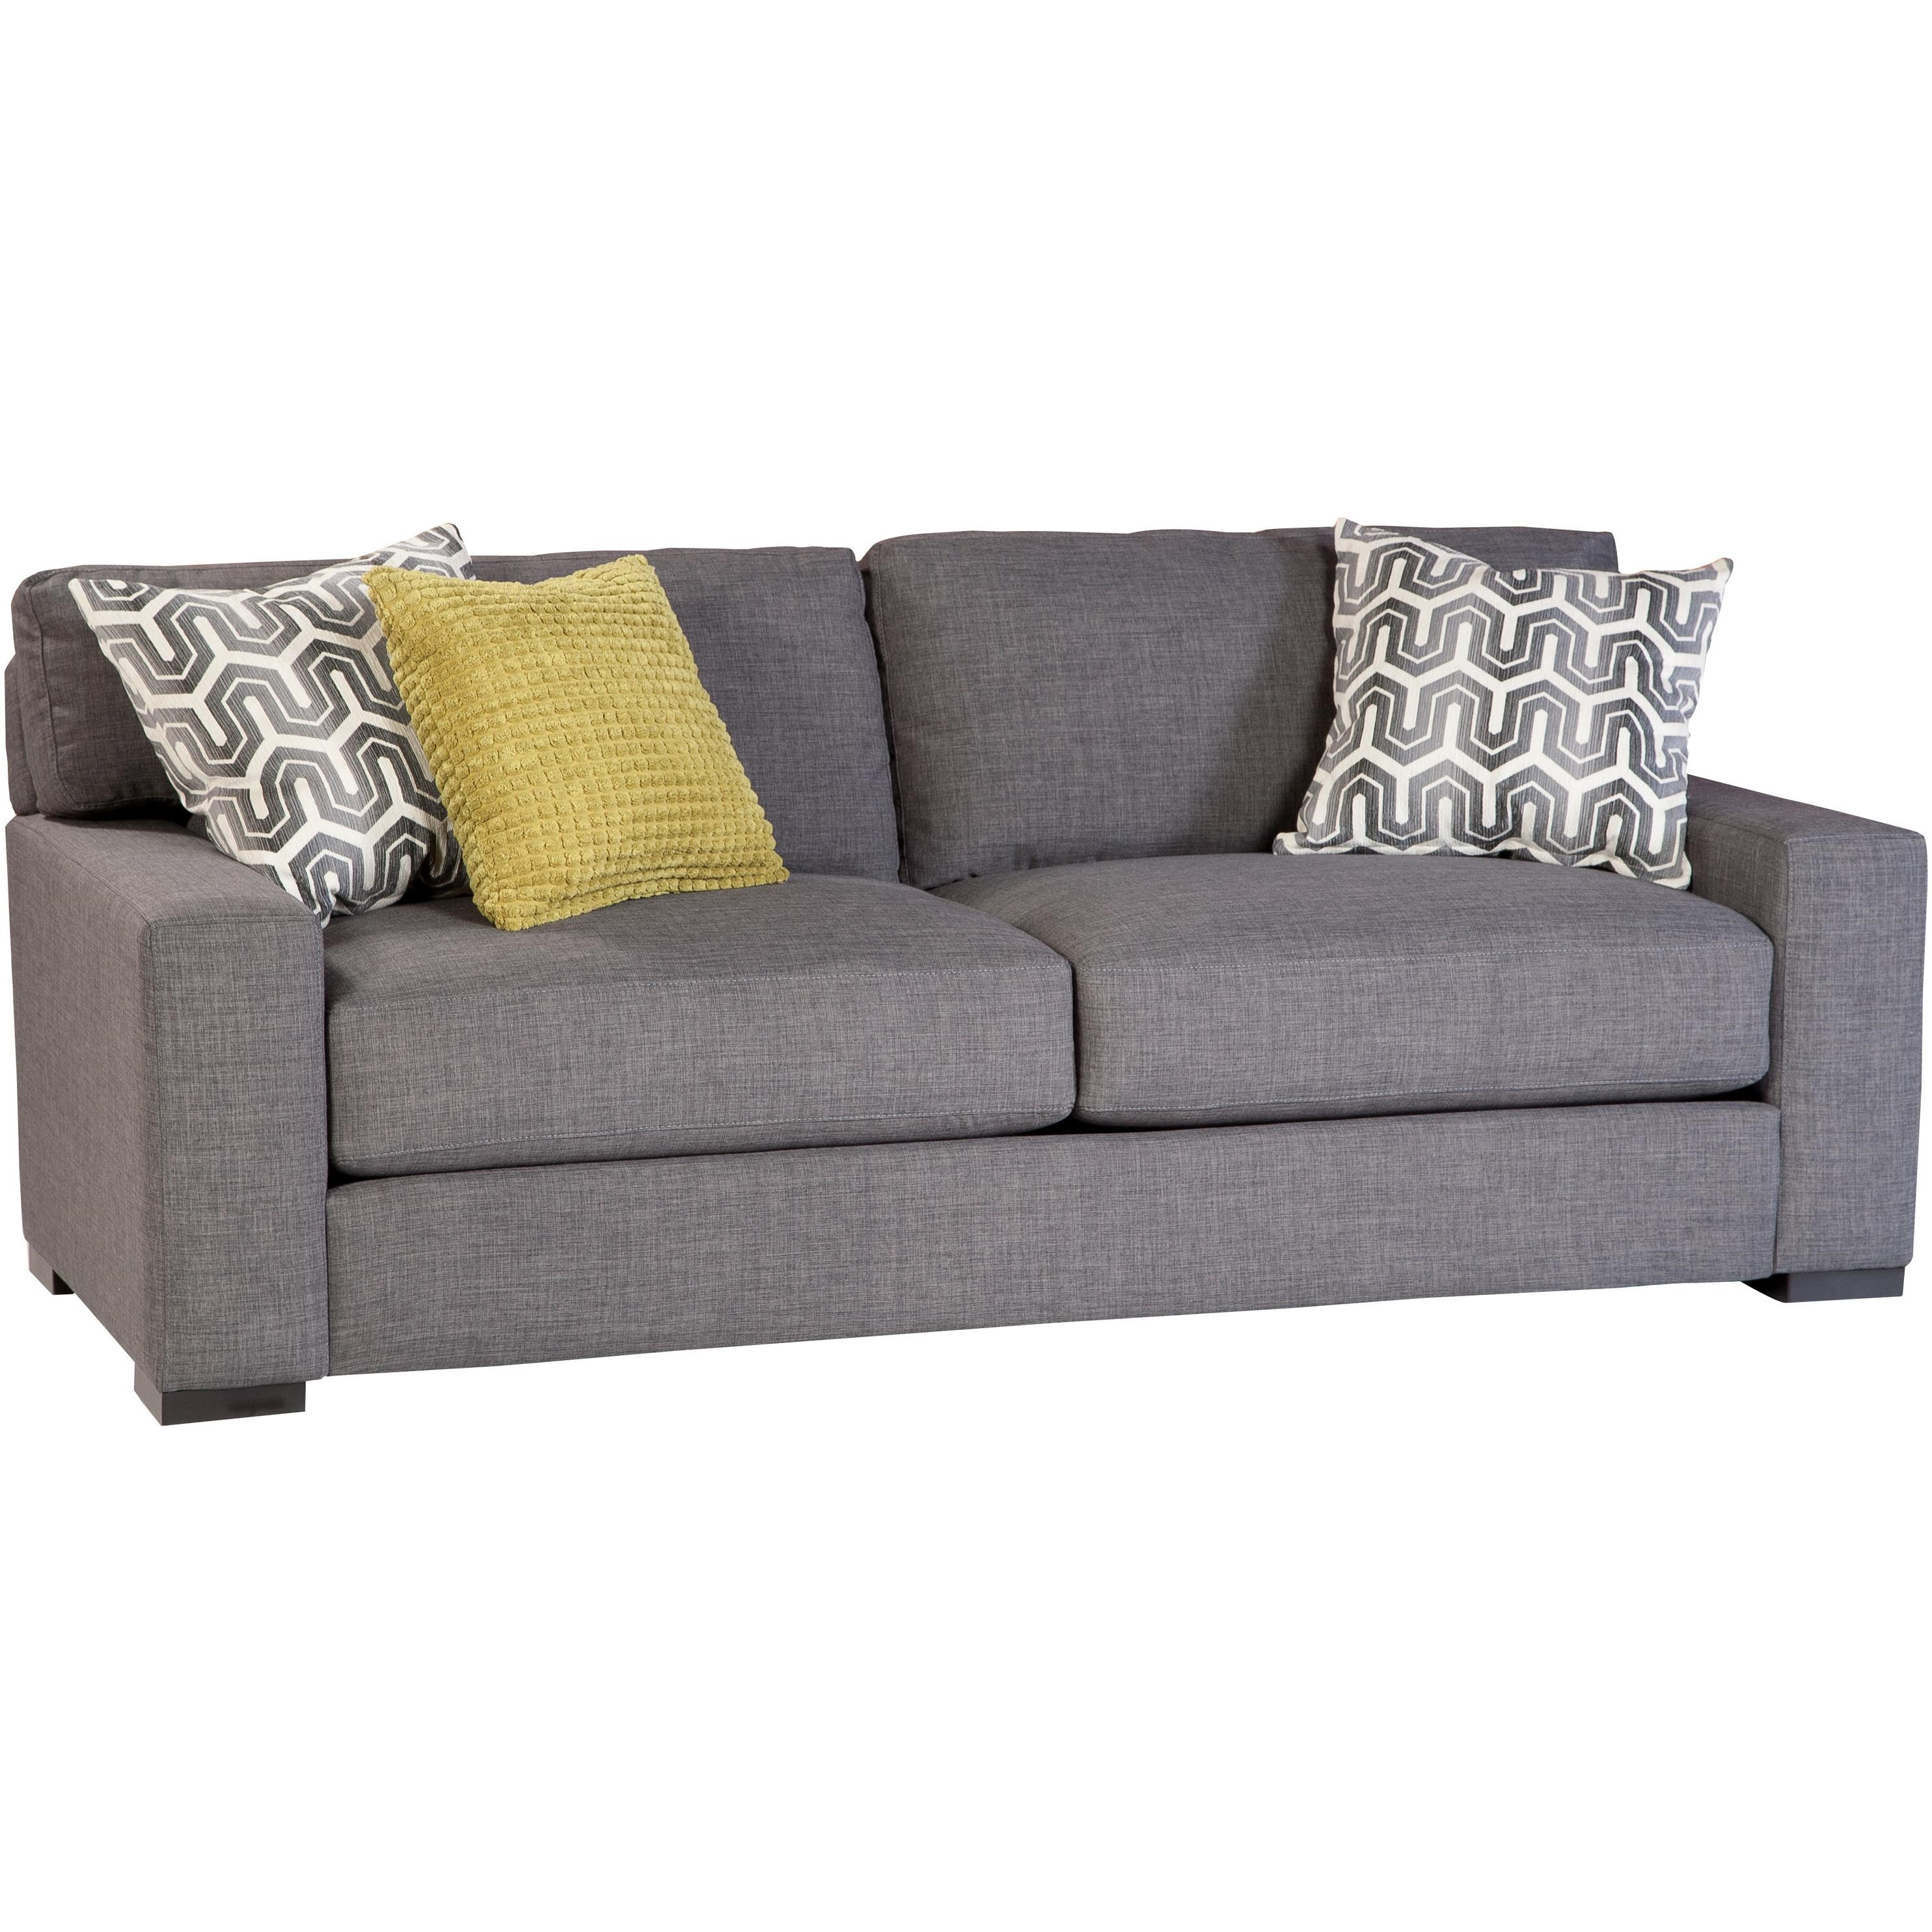 Jonathan Louis Martell Contemporary Sofa With Track Arms And 3 Throw Pillows